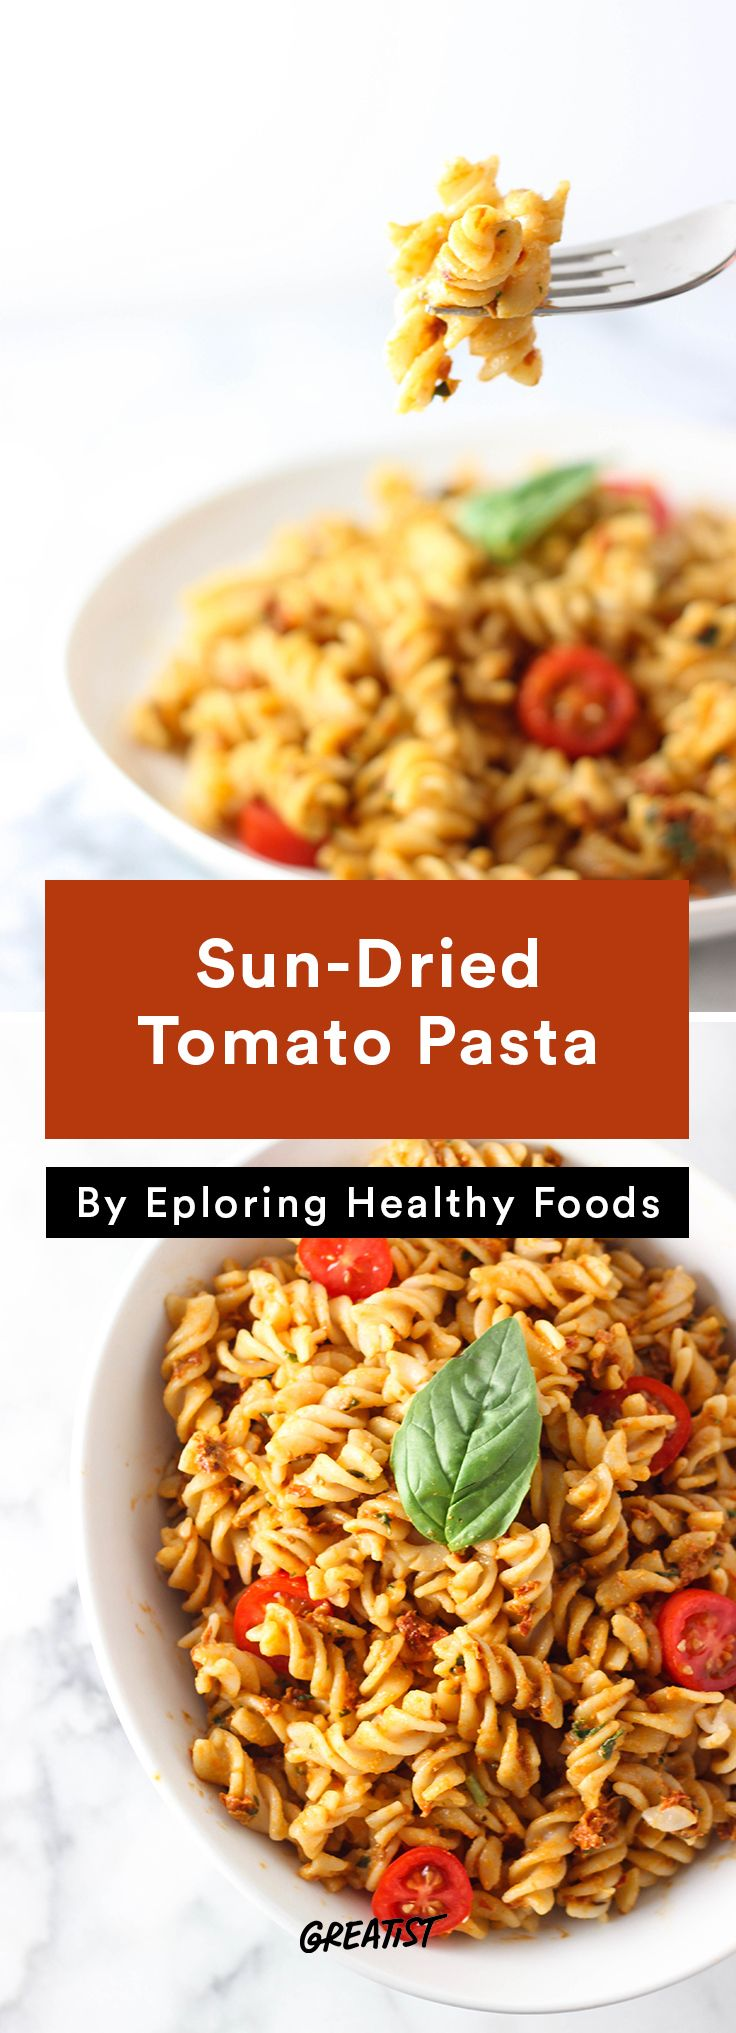 83 best ideas for lunches tired of the same old stuff images on sun dried tomato pasta fast and easy vegan forumfinder Image collections